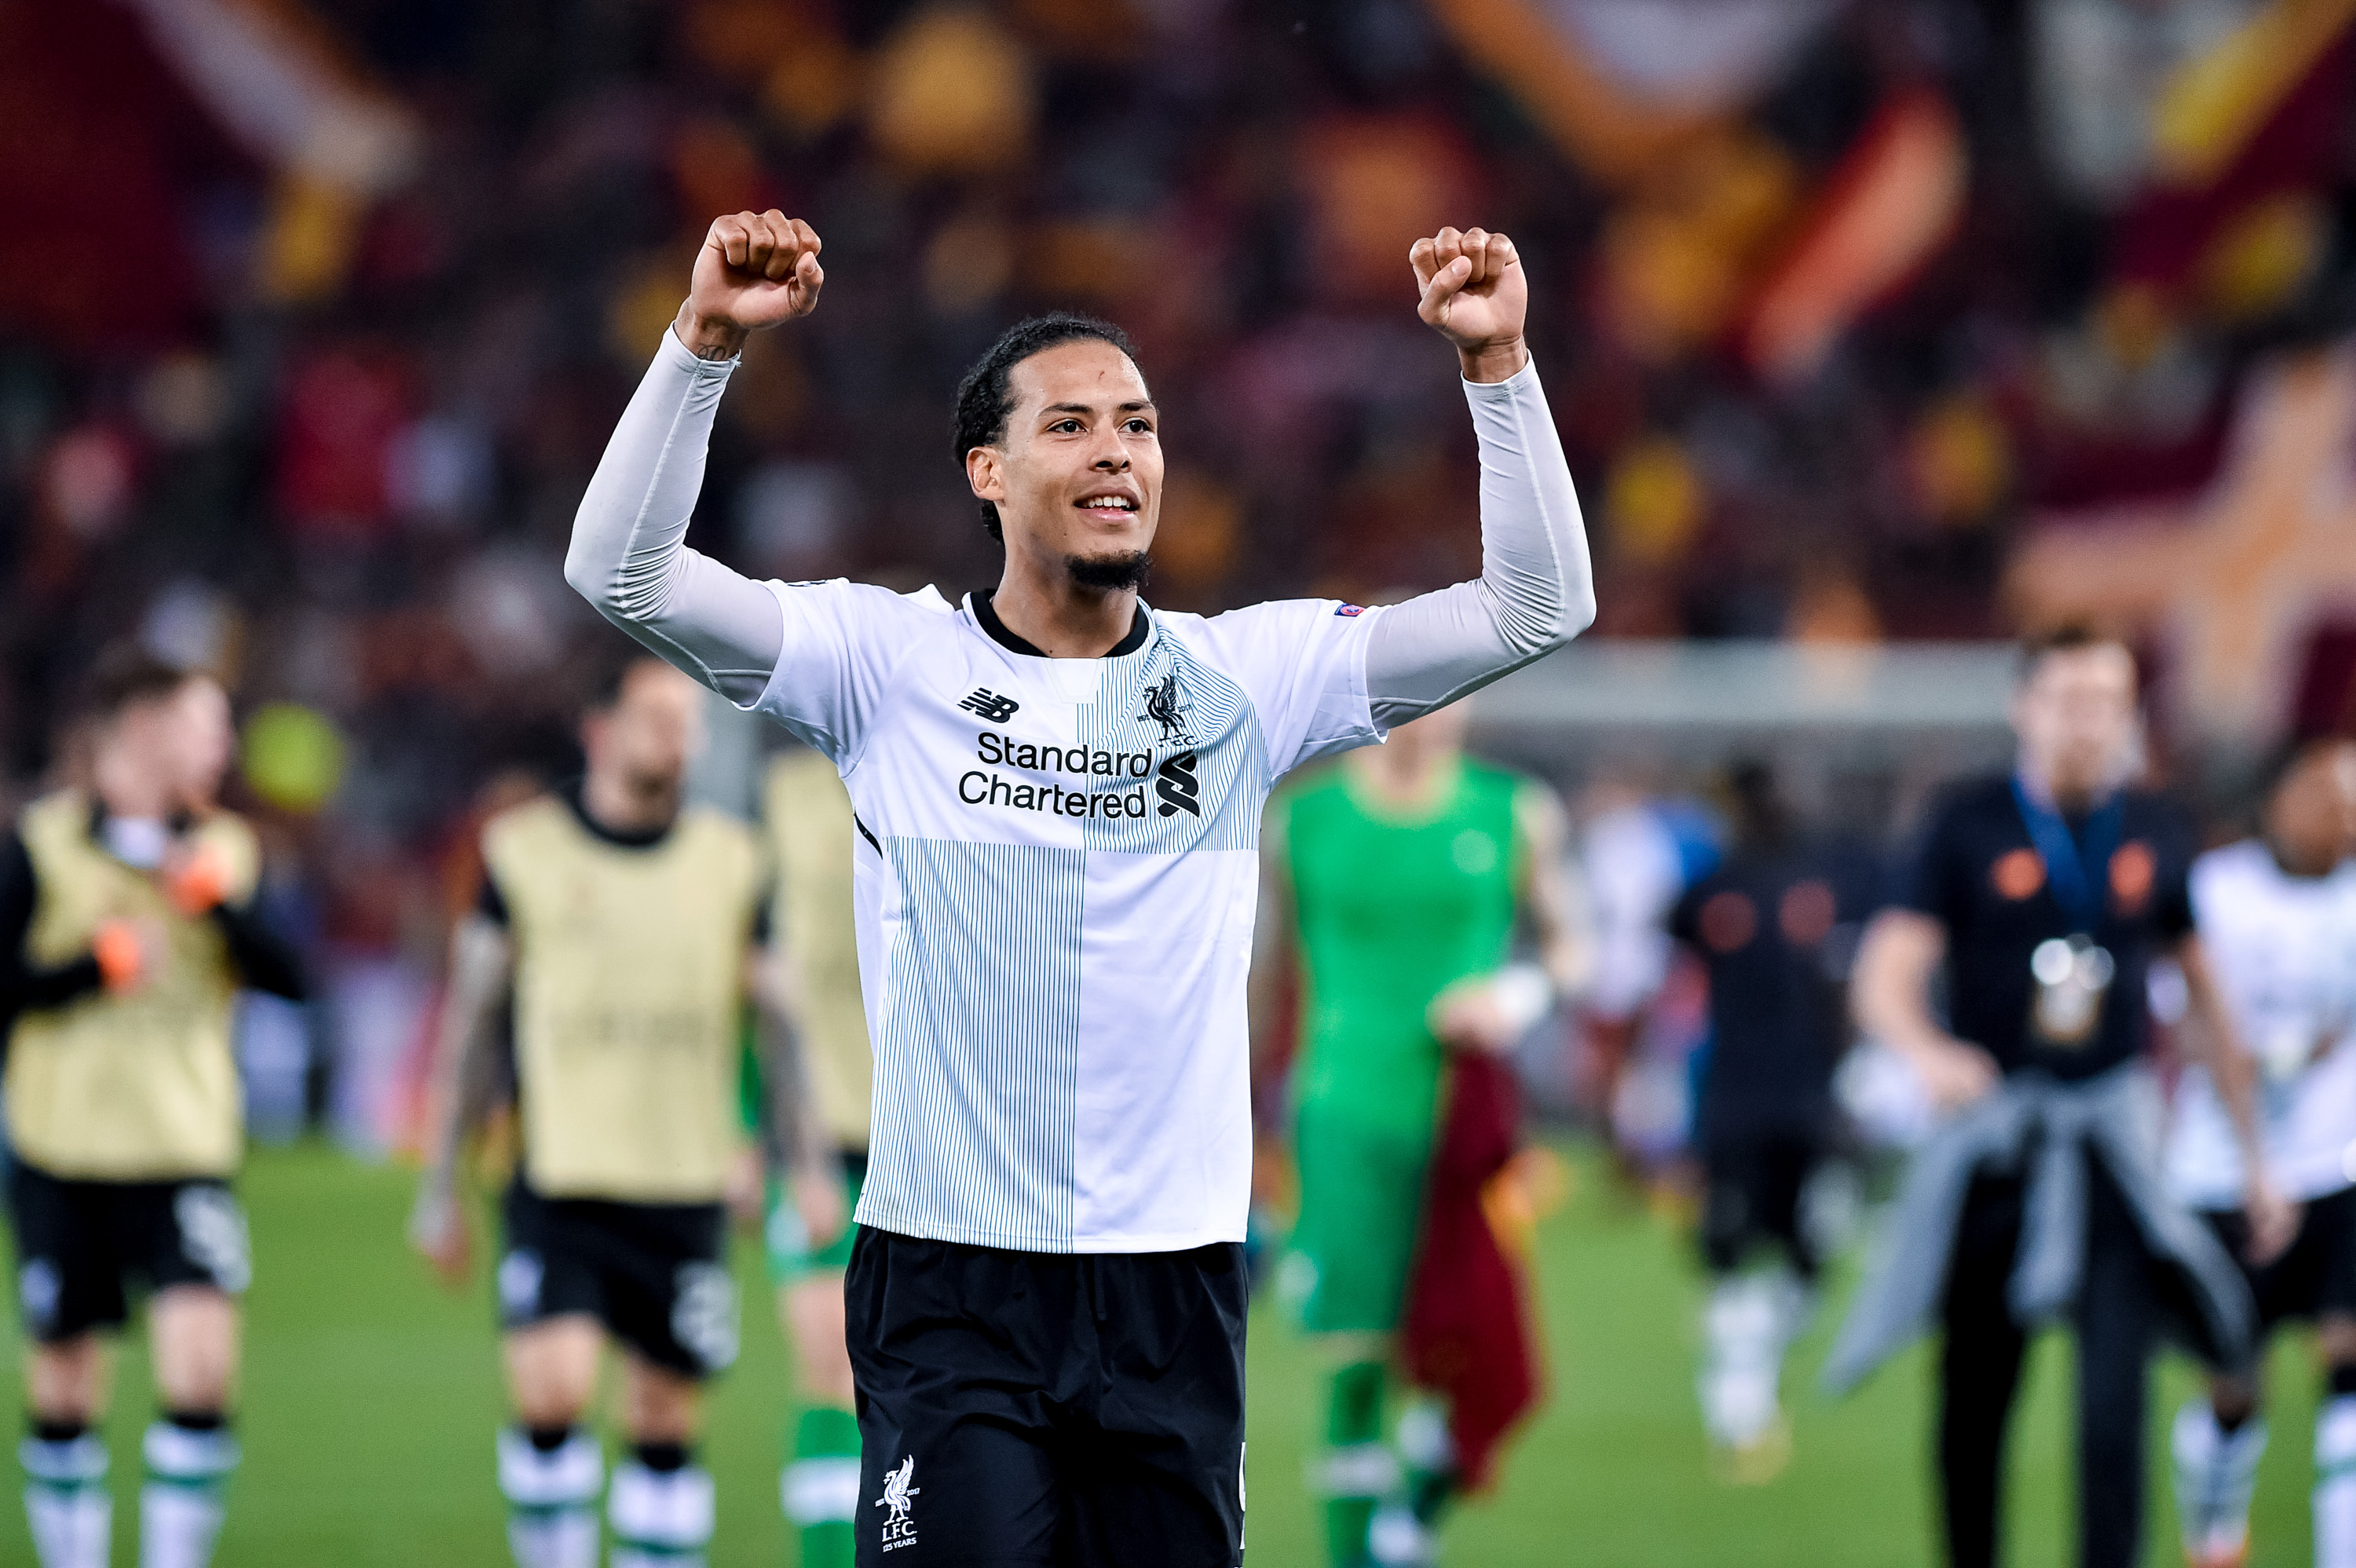 Van Dijk has been a bargain at £75 million. Image: PA Images